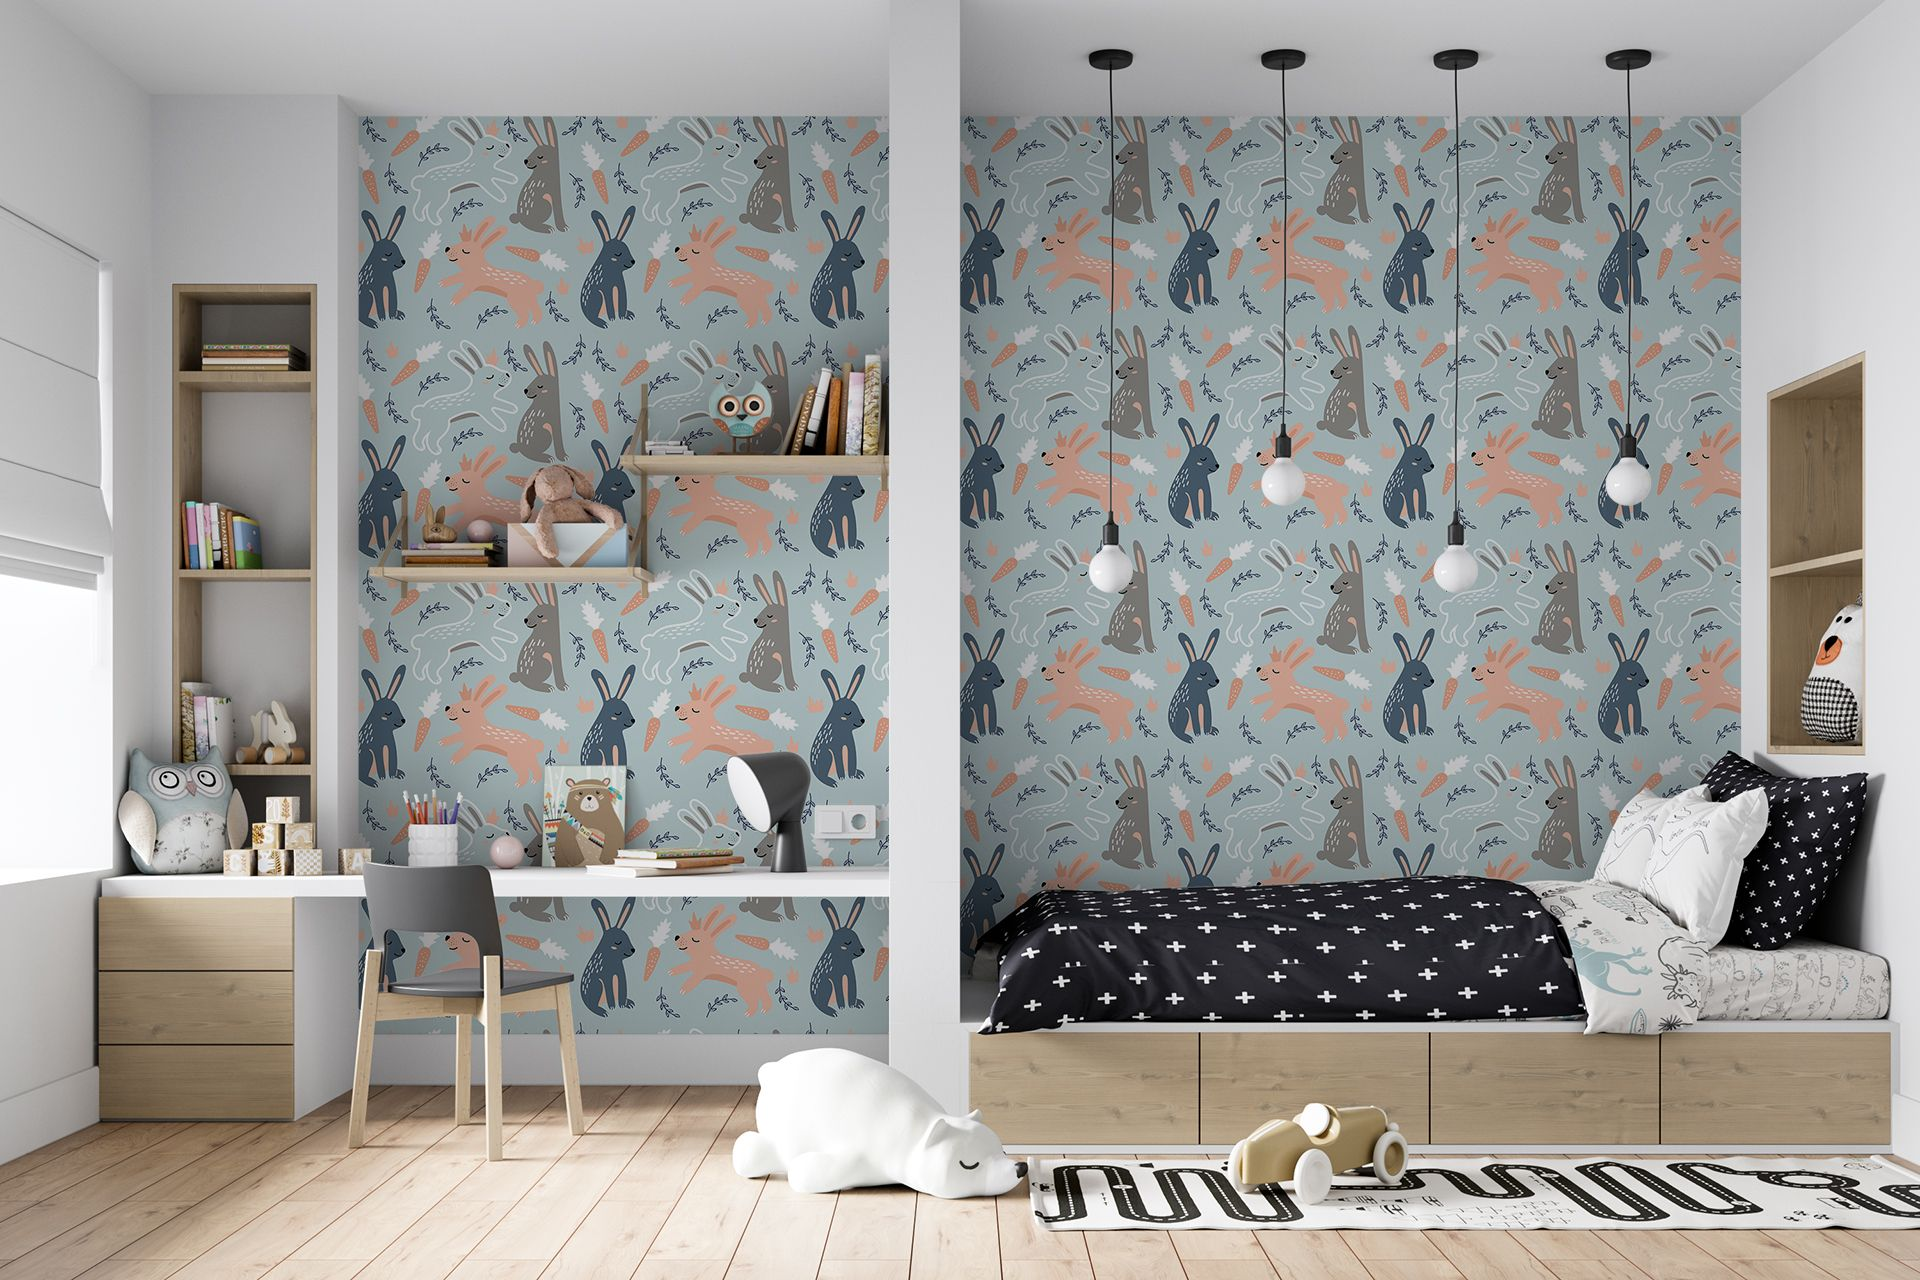 Get these great, Self Adhesive, Hand Drawn Removable Wallpaper. these long lasting WallaWall Wallpaper, it will give the rooms in your home a colorful meaning. You can get these by clicking the pin.👀👌 #wallpaper #wallpapers #interiordesign #d #wallpapermurah #wallpaperdinding #homedecor #art #design #wallpapersticker #interior #love #photography #wallpaperdecor #wallsticker #like #anime #walldecor #dekorasirumah #aesthetic #instagram #follow #decor #wallcovering #wallpaperjakarta #nature #tum